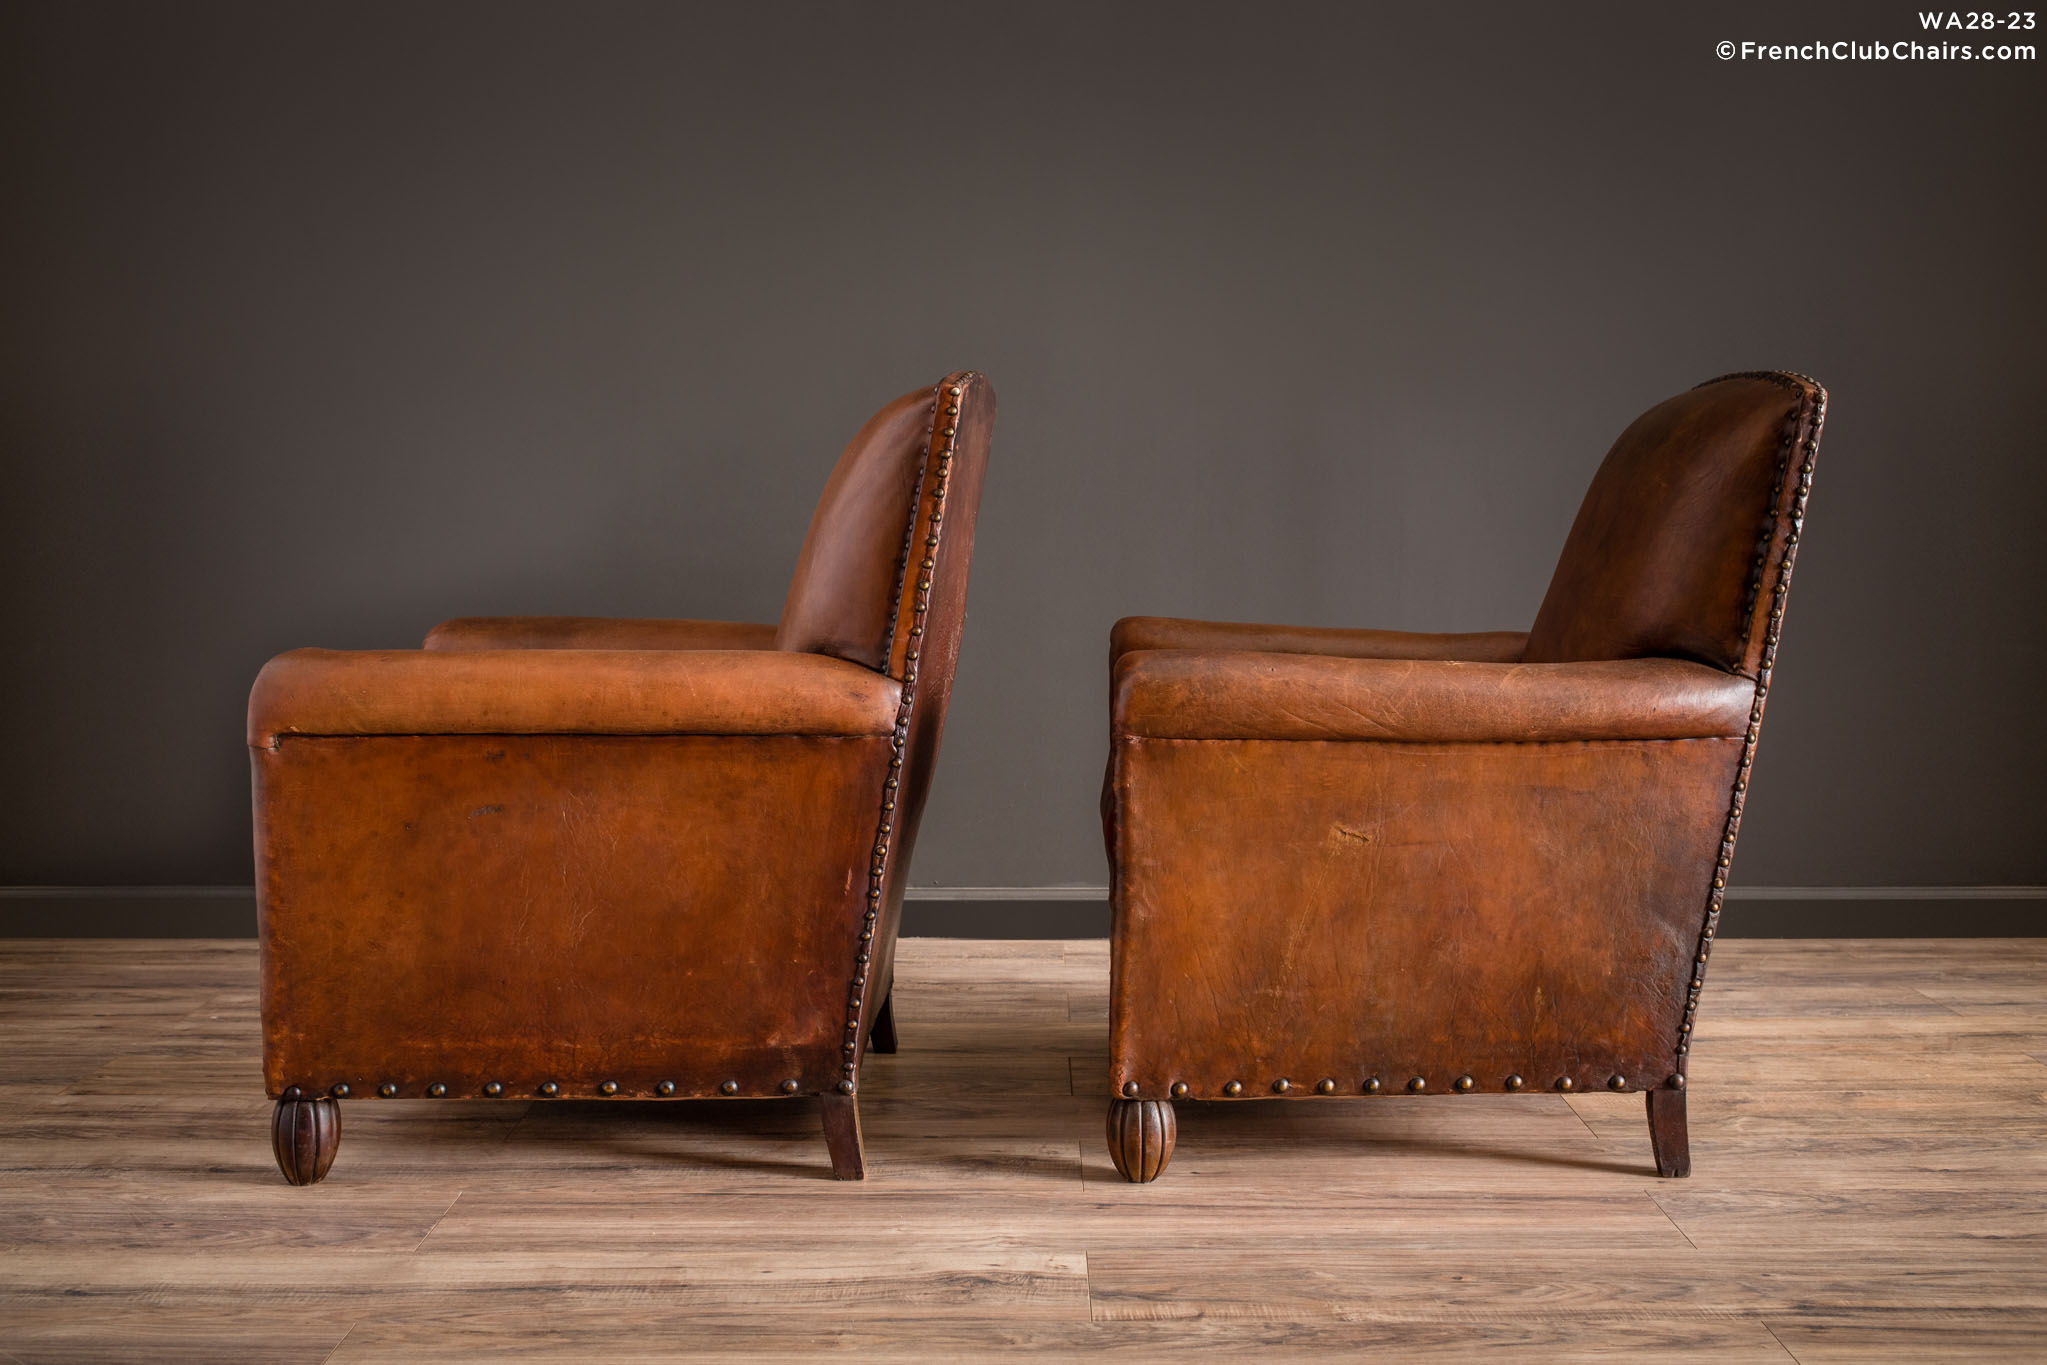 WA_28-23_Pontcharra_Nailed_Library_Pair_R_4LT1-williams-antiks-leather-french-club-chair-wa_fcccom